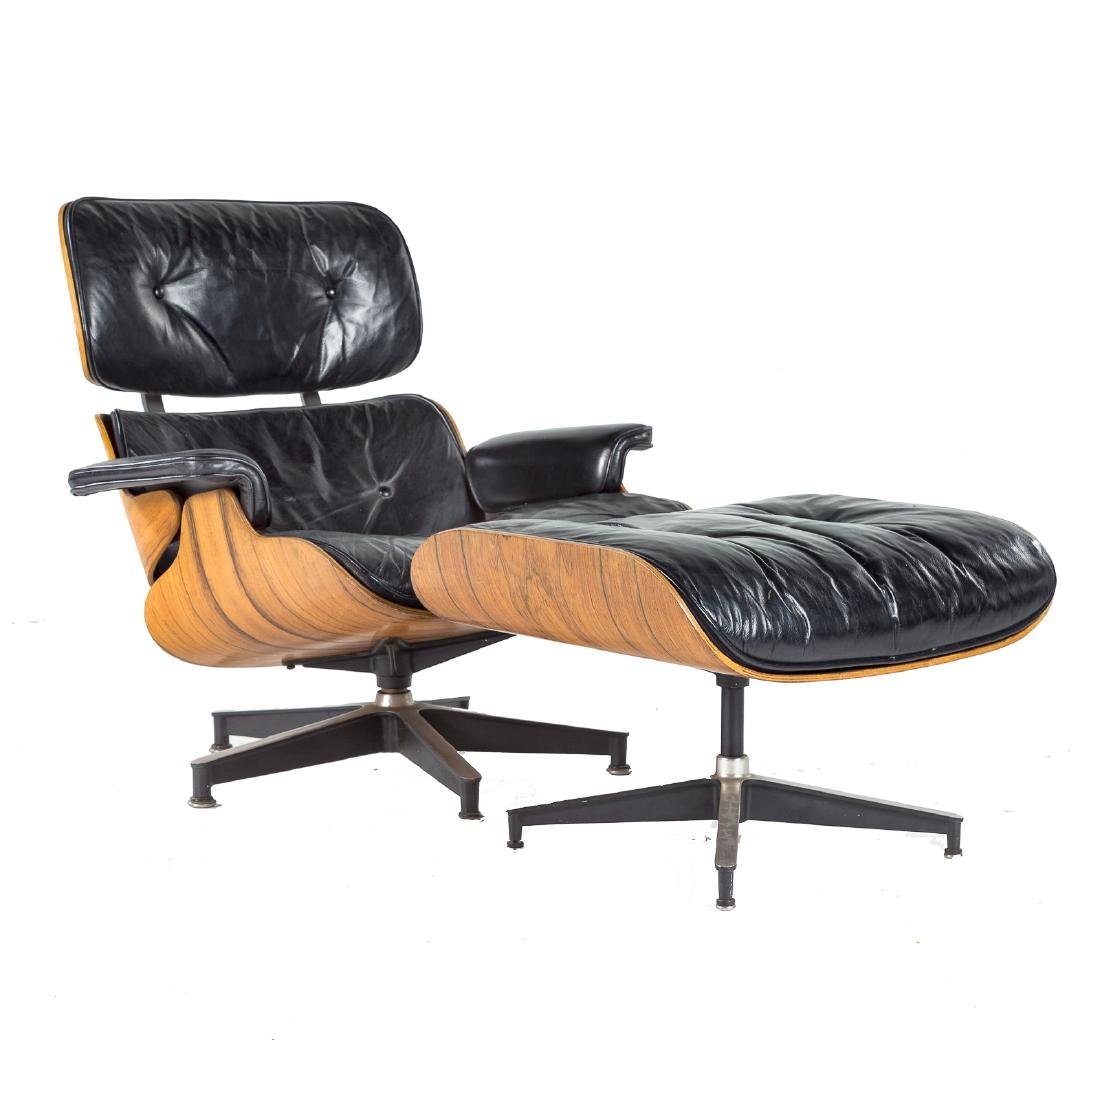 Eames for Herman Miller Lounge Chair and Ottoman